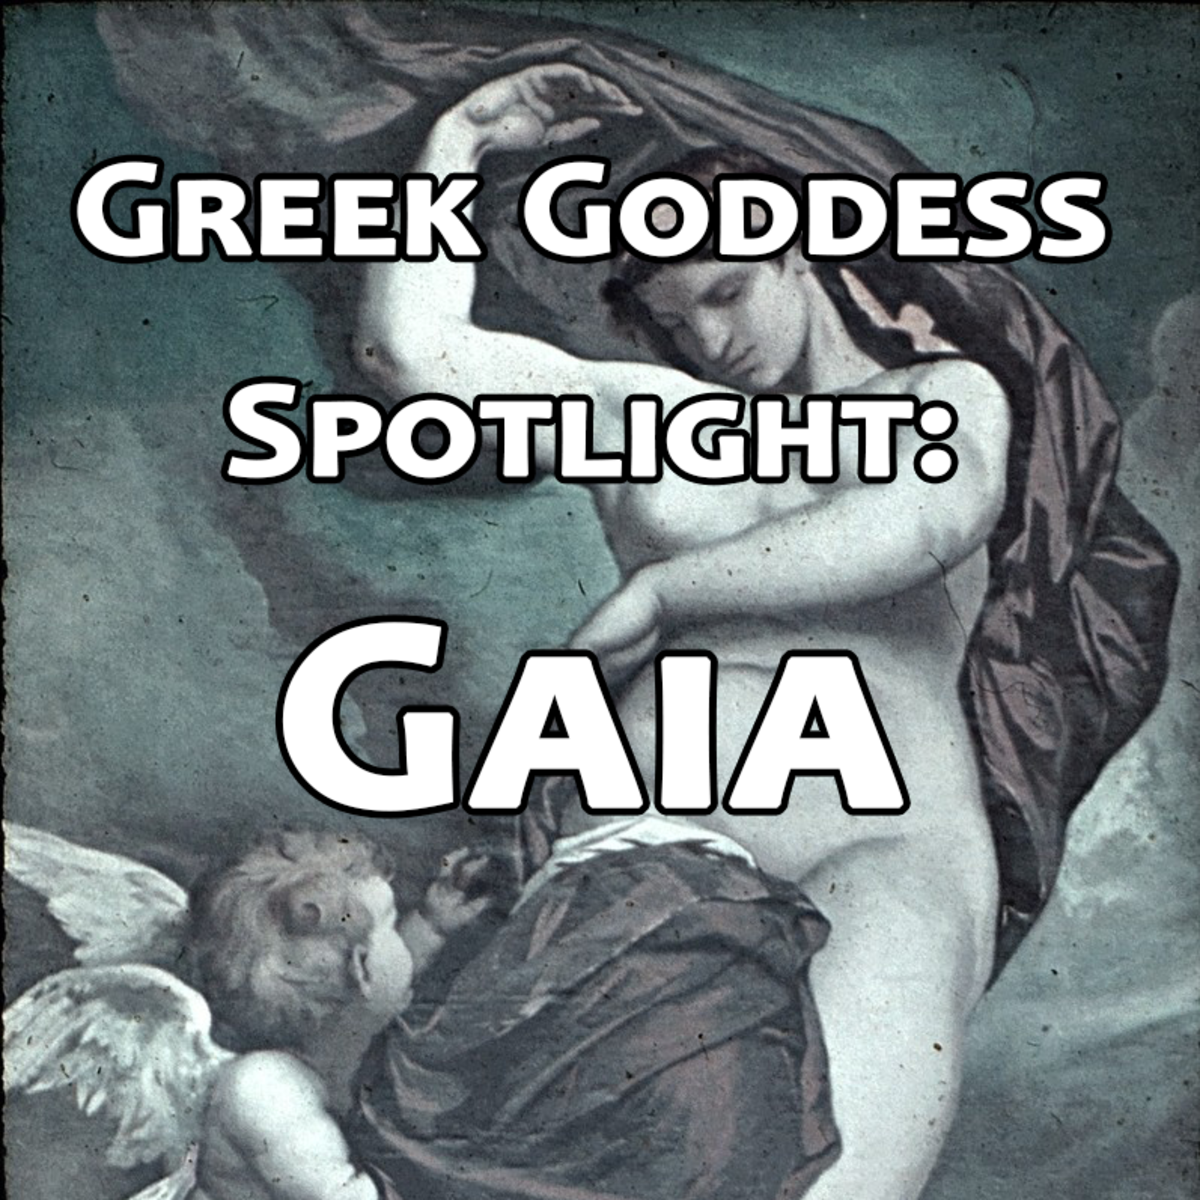 Who is the Greek Goddess Gaia?